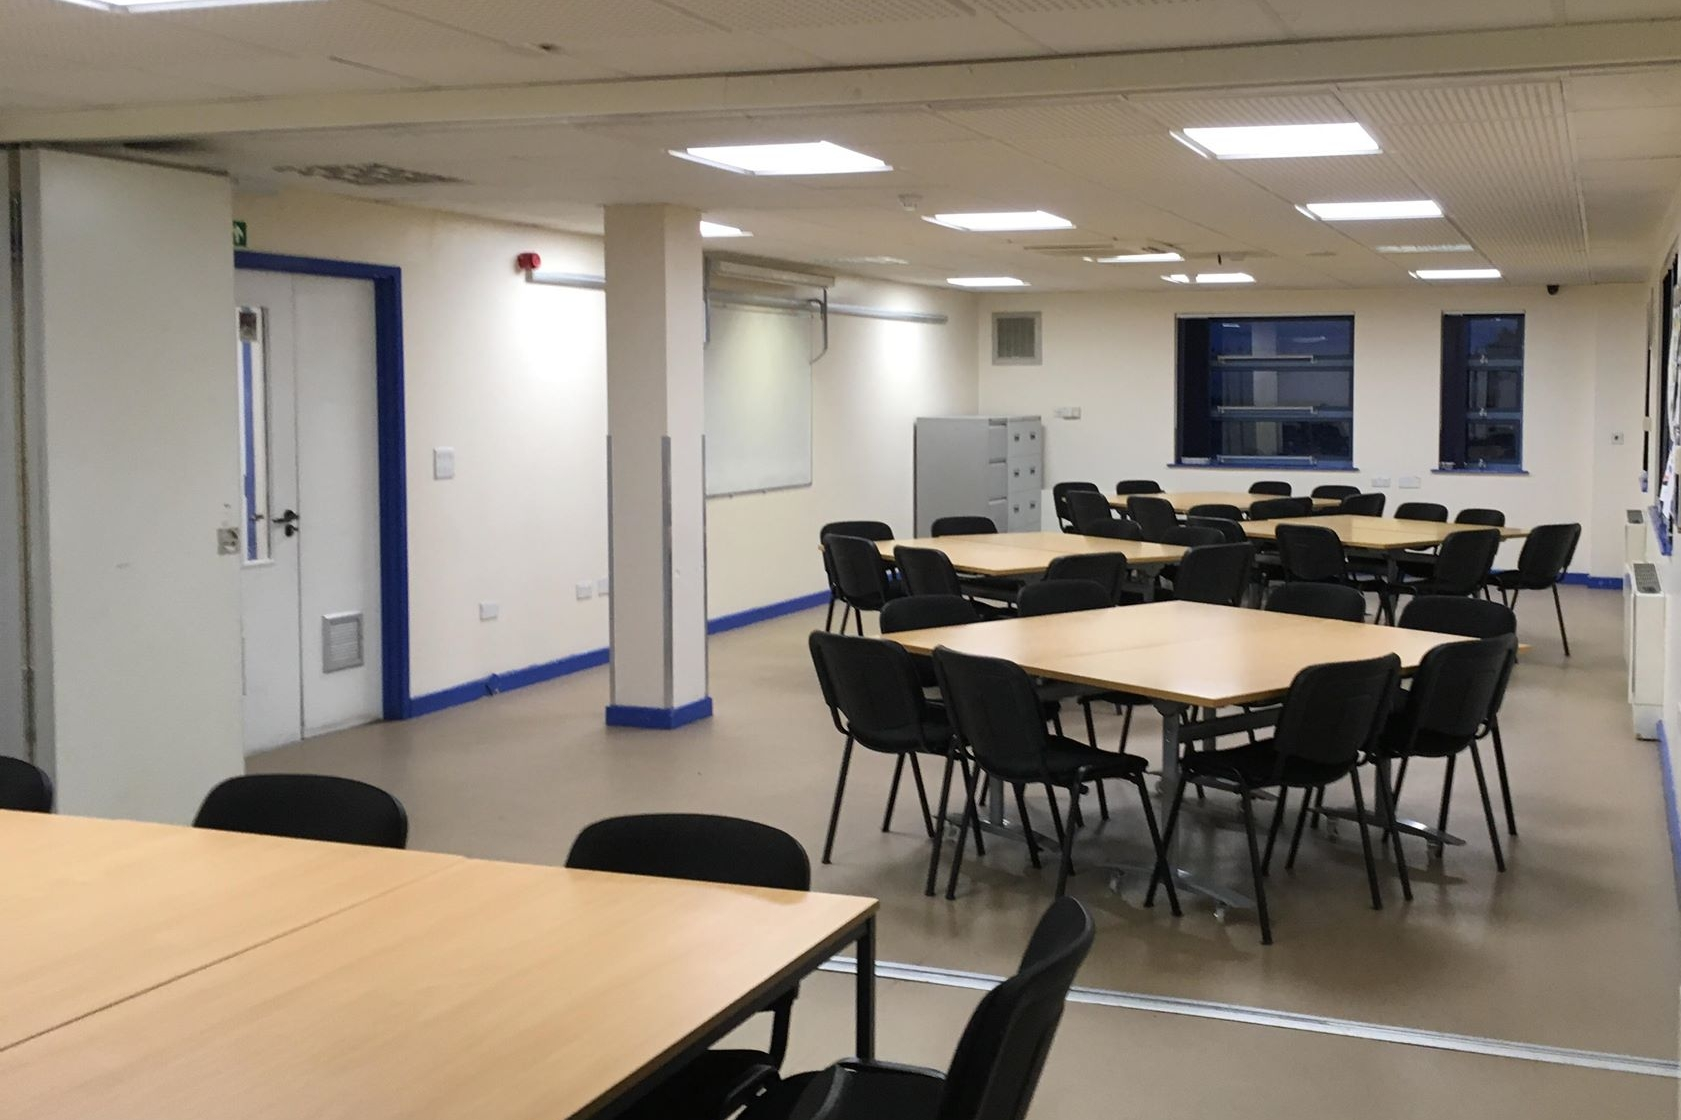 Meeting Rooms - From £15 per hour